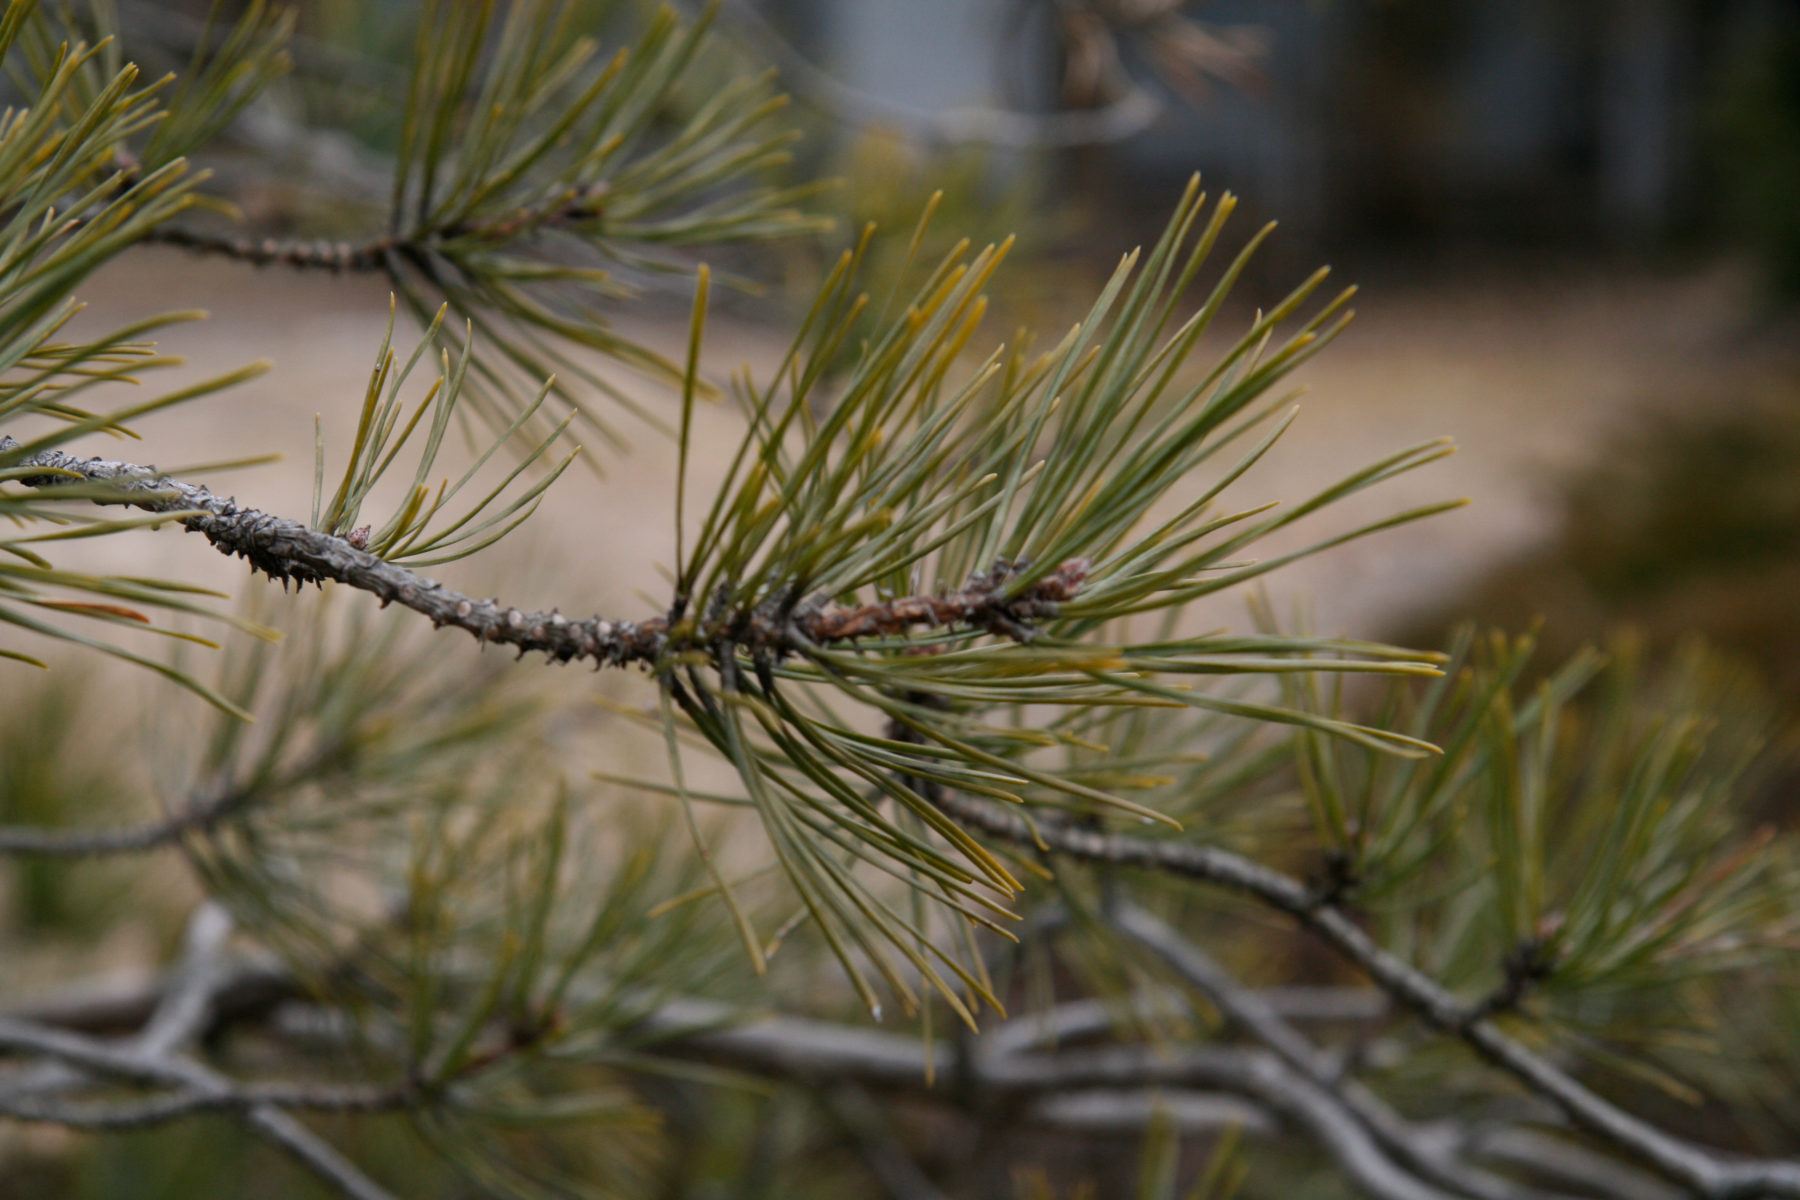 Pitch Pine branches and needles